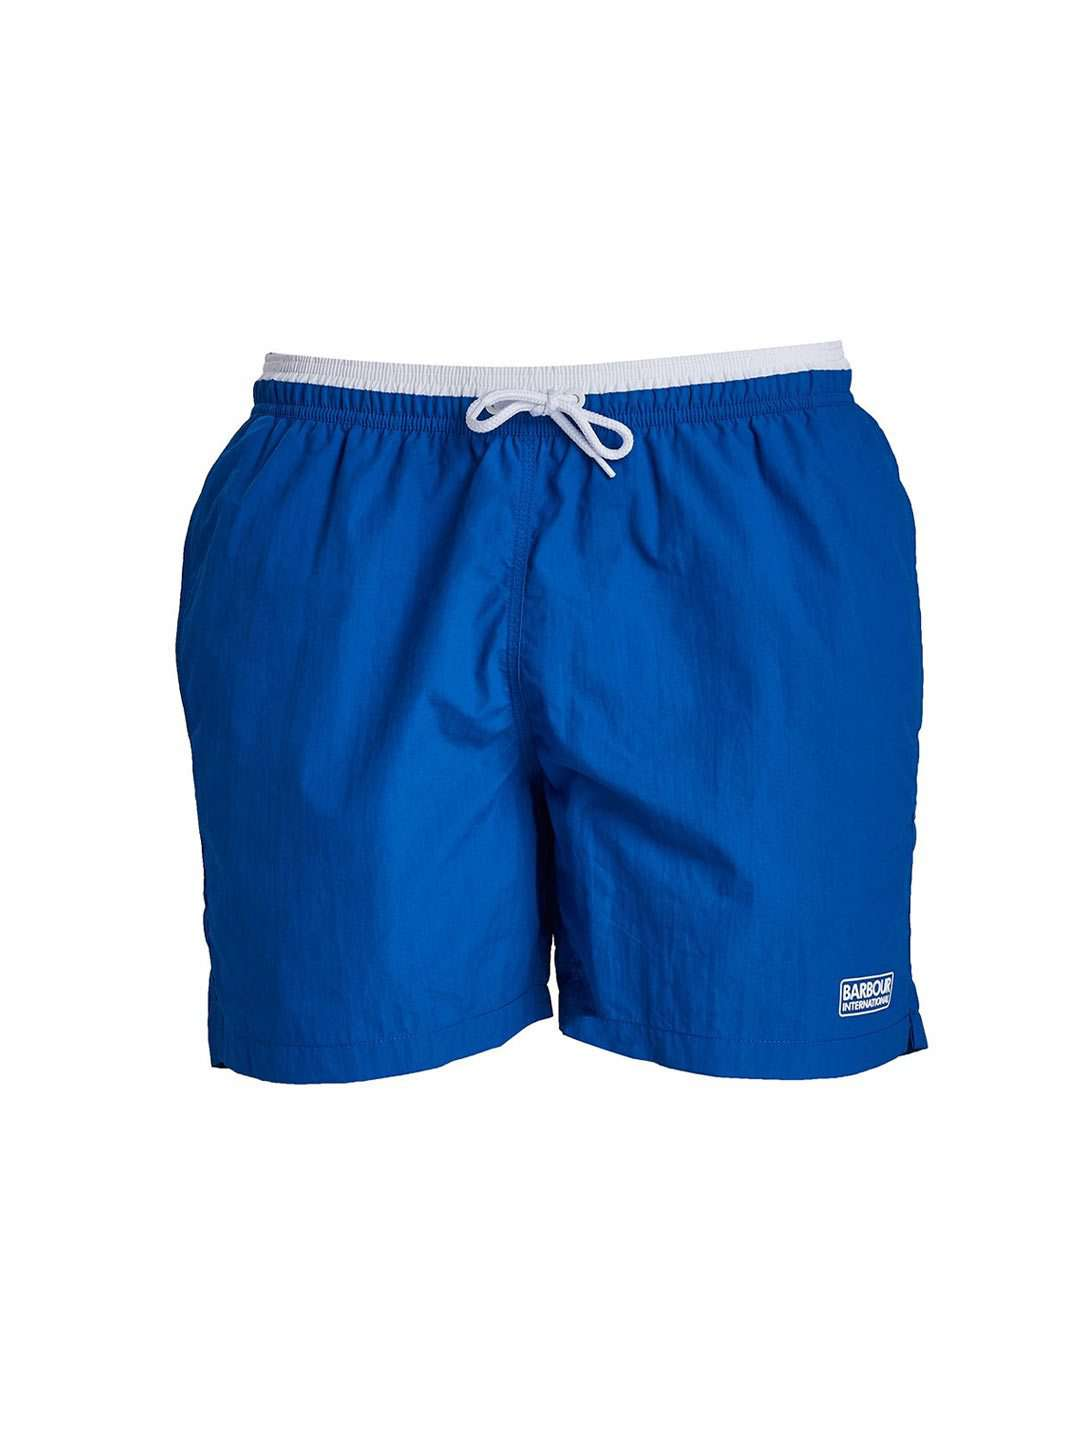 BARBOUR INTL. Edge Trim Swim Shorts - Revolver Menswear Bawtry